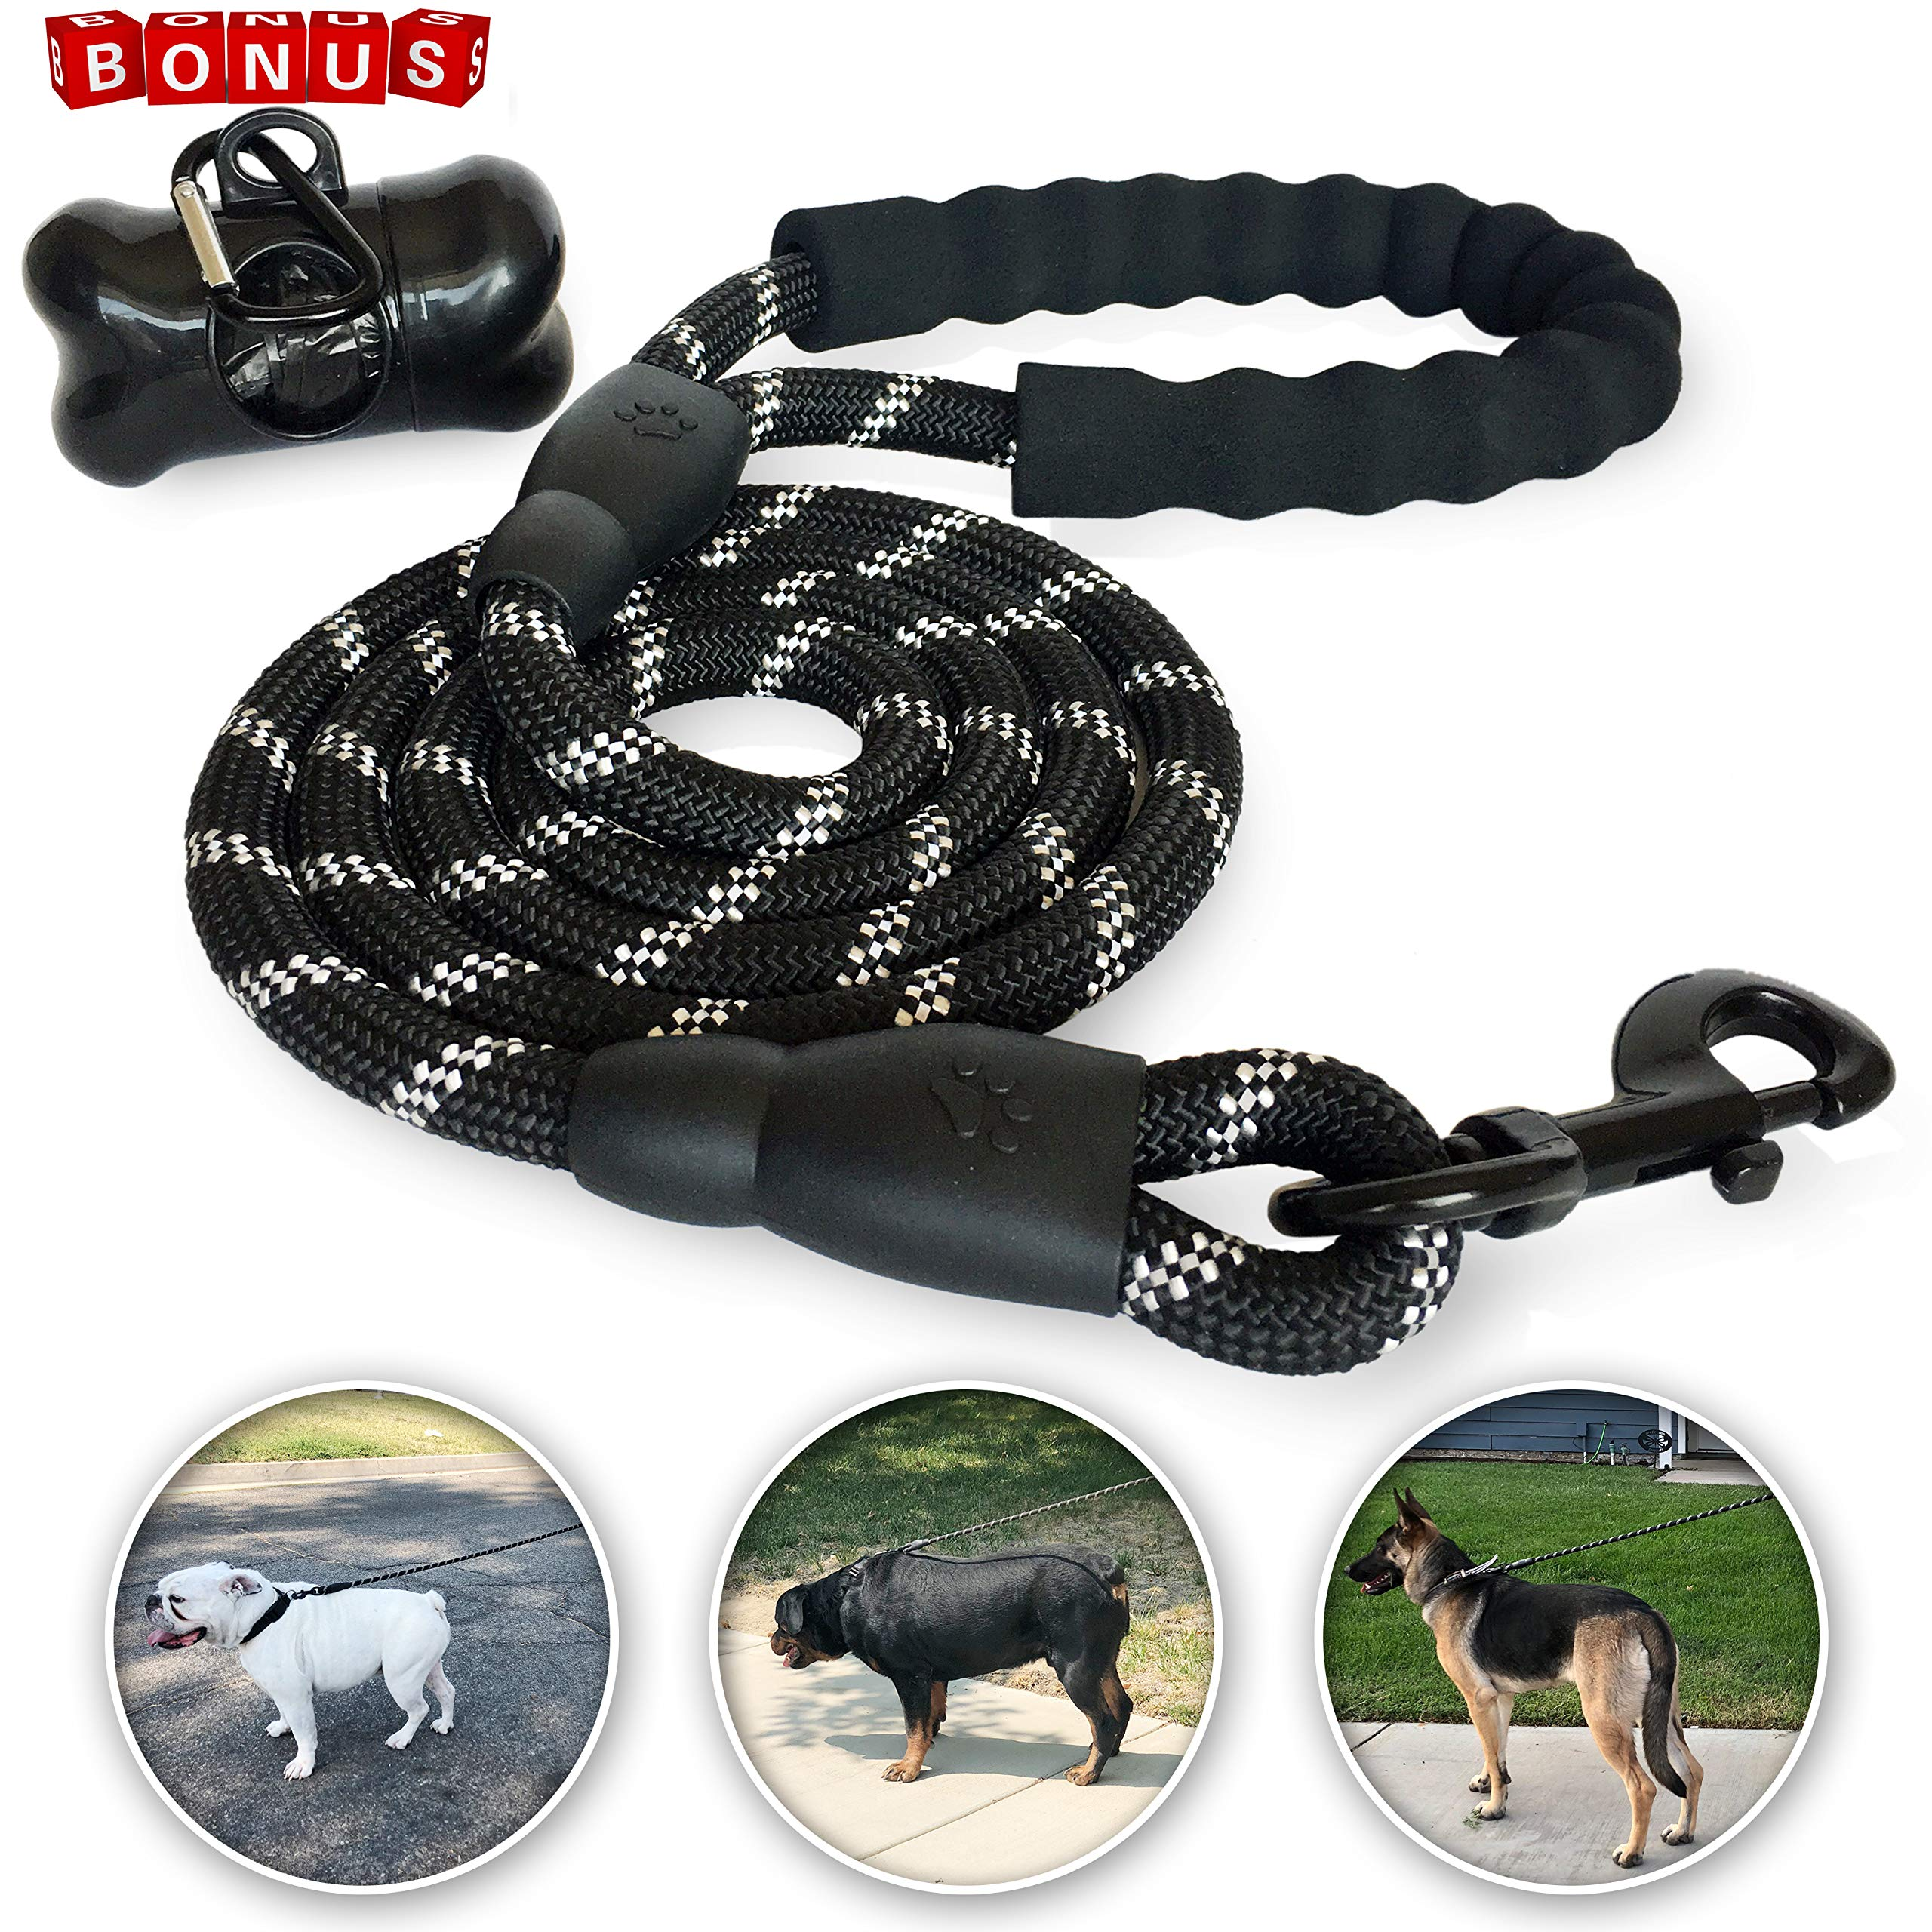 Coronado Collective 5 FT Strong Black Dog Leash Comfortable Padded Handle Heavy Duty Nylon Rope 360 Tangle-Free Highly Reflective Leashes Medium Large Dogs Free Doggie Poop Waste Bags